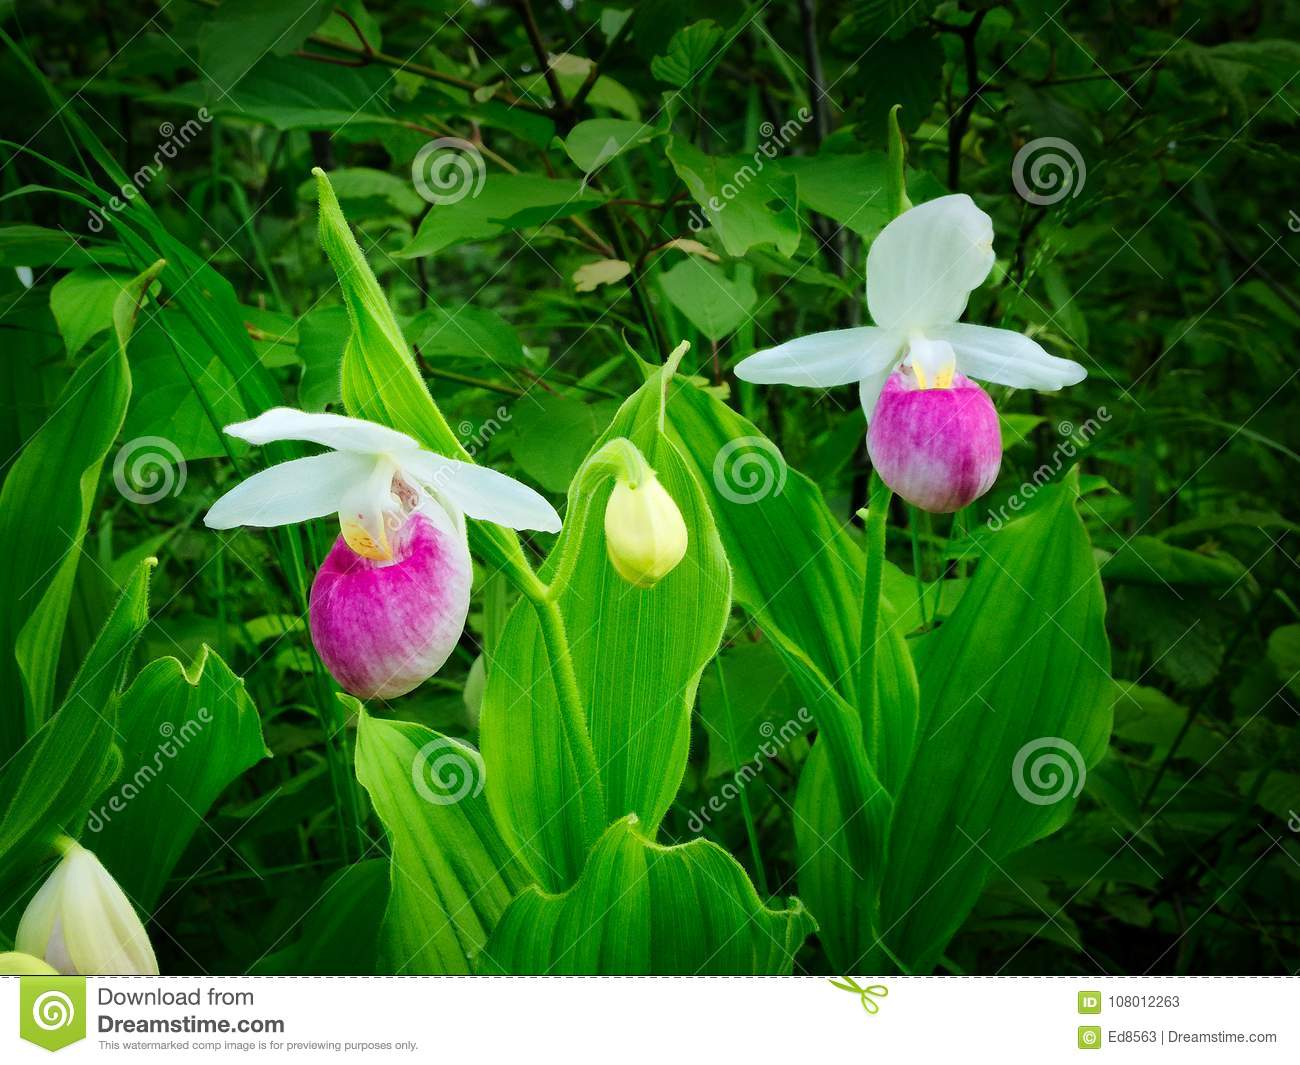 Showy ladys slipper cypripedium reginae minnesota state flower showy ladys slipper cypripedium reginae also known as pink and white ladys slipper or the queens ladys slipper beautiful minnesota state flower mightylinksfo